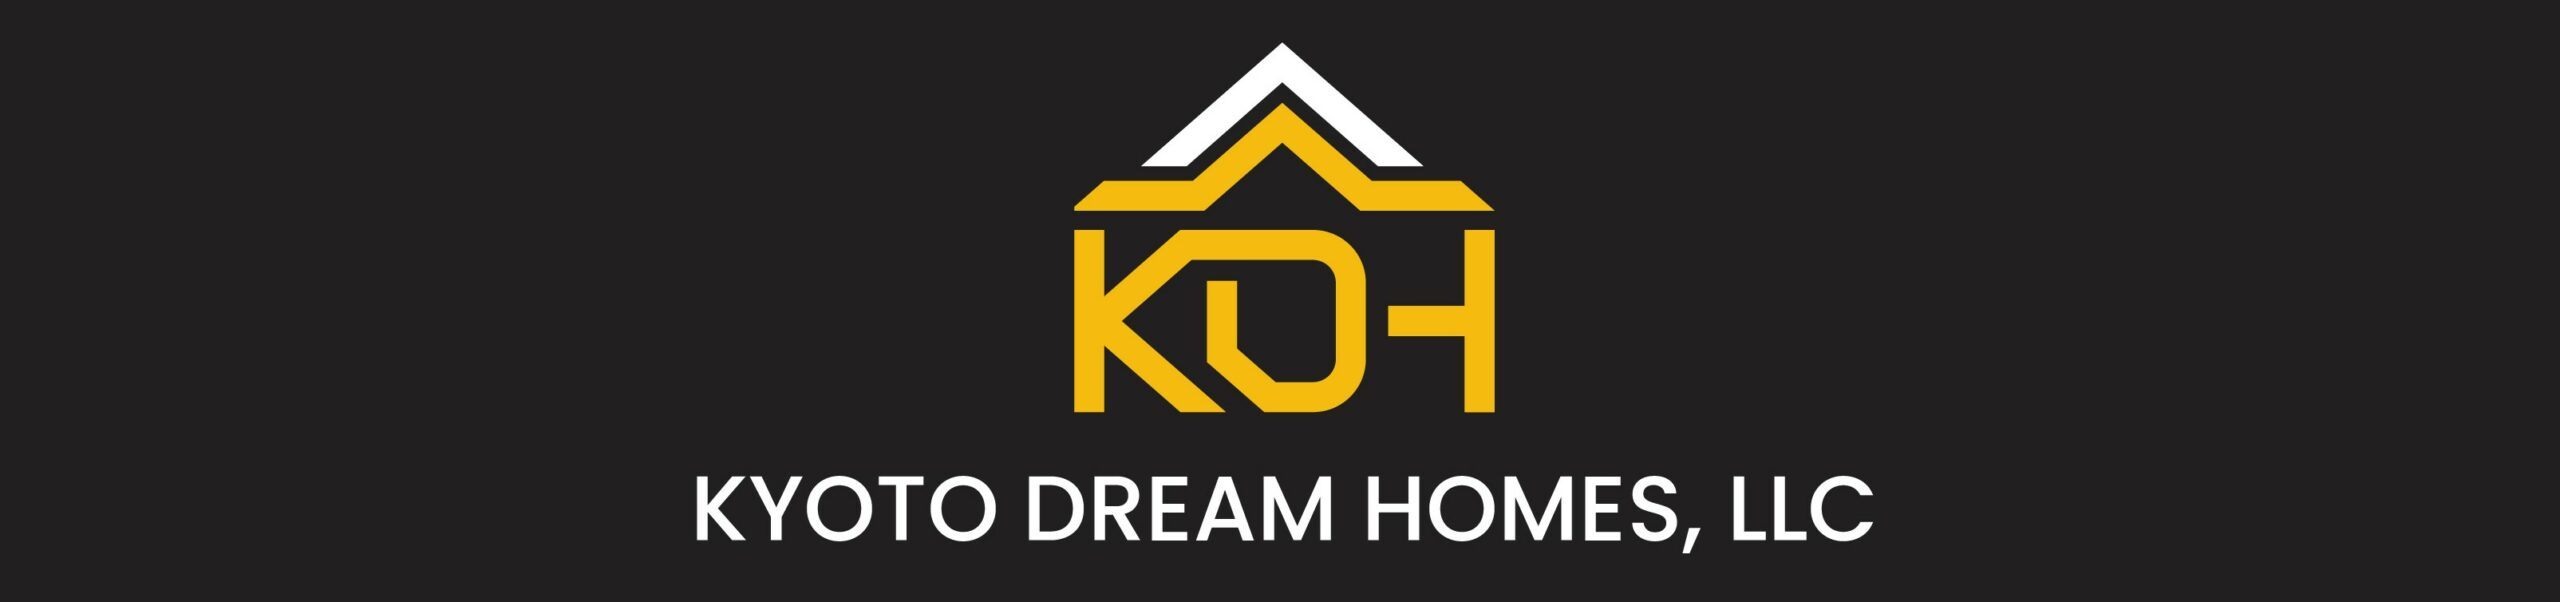 About KDH - Featured Image